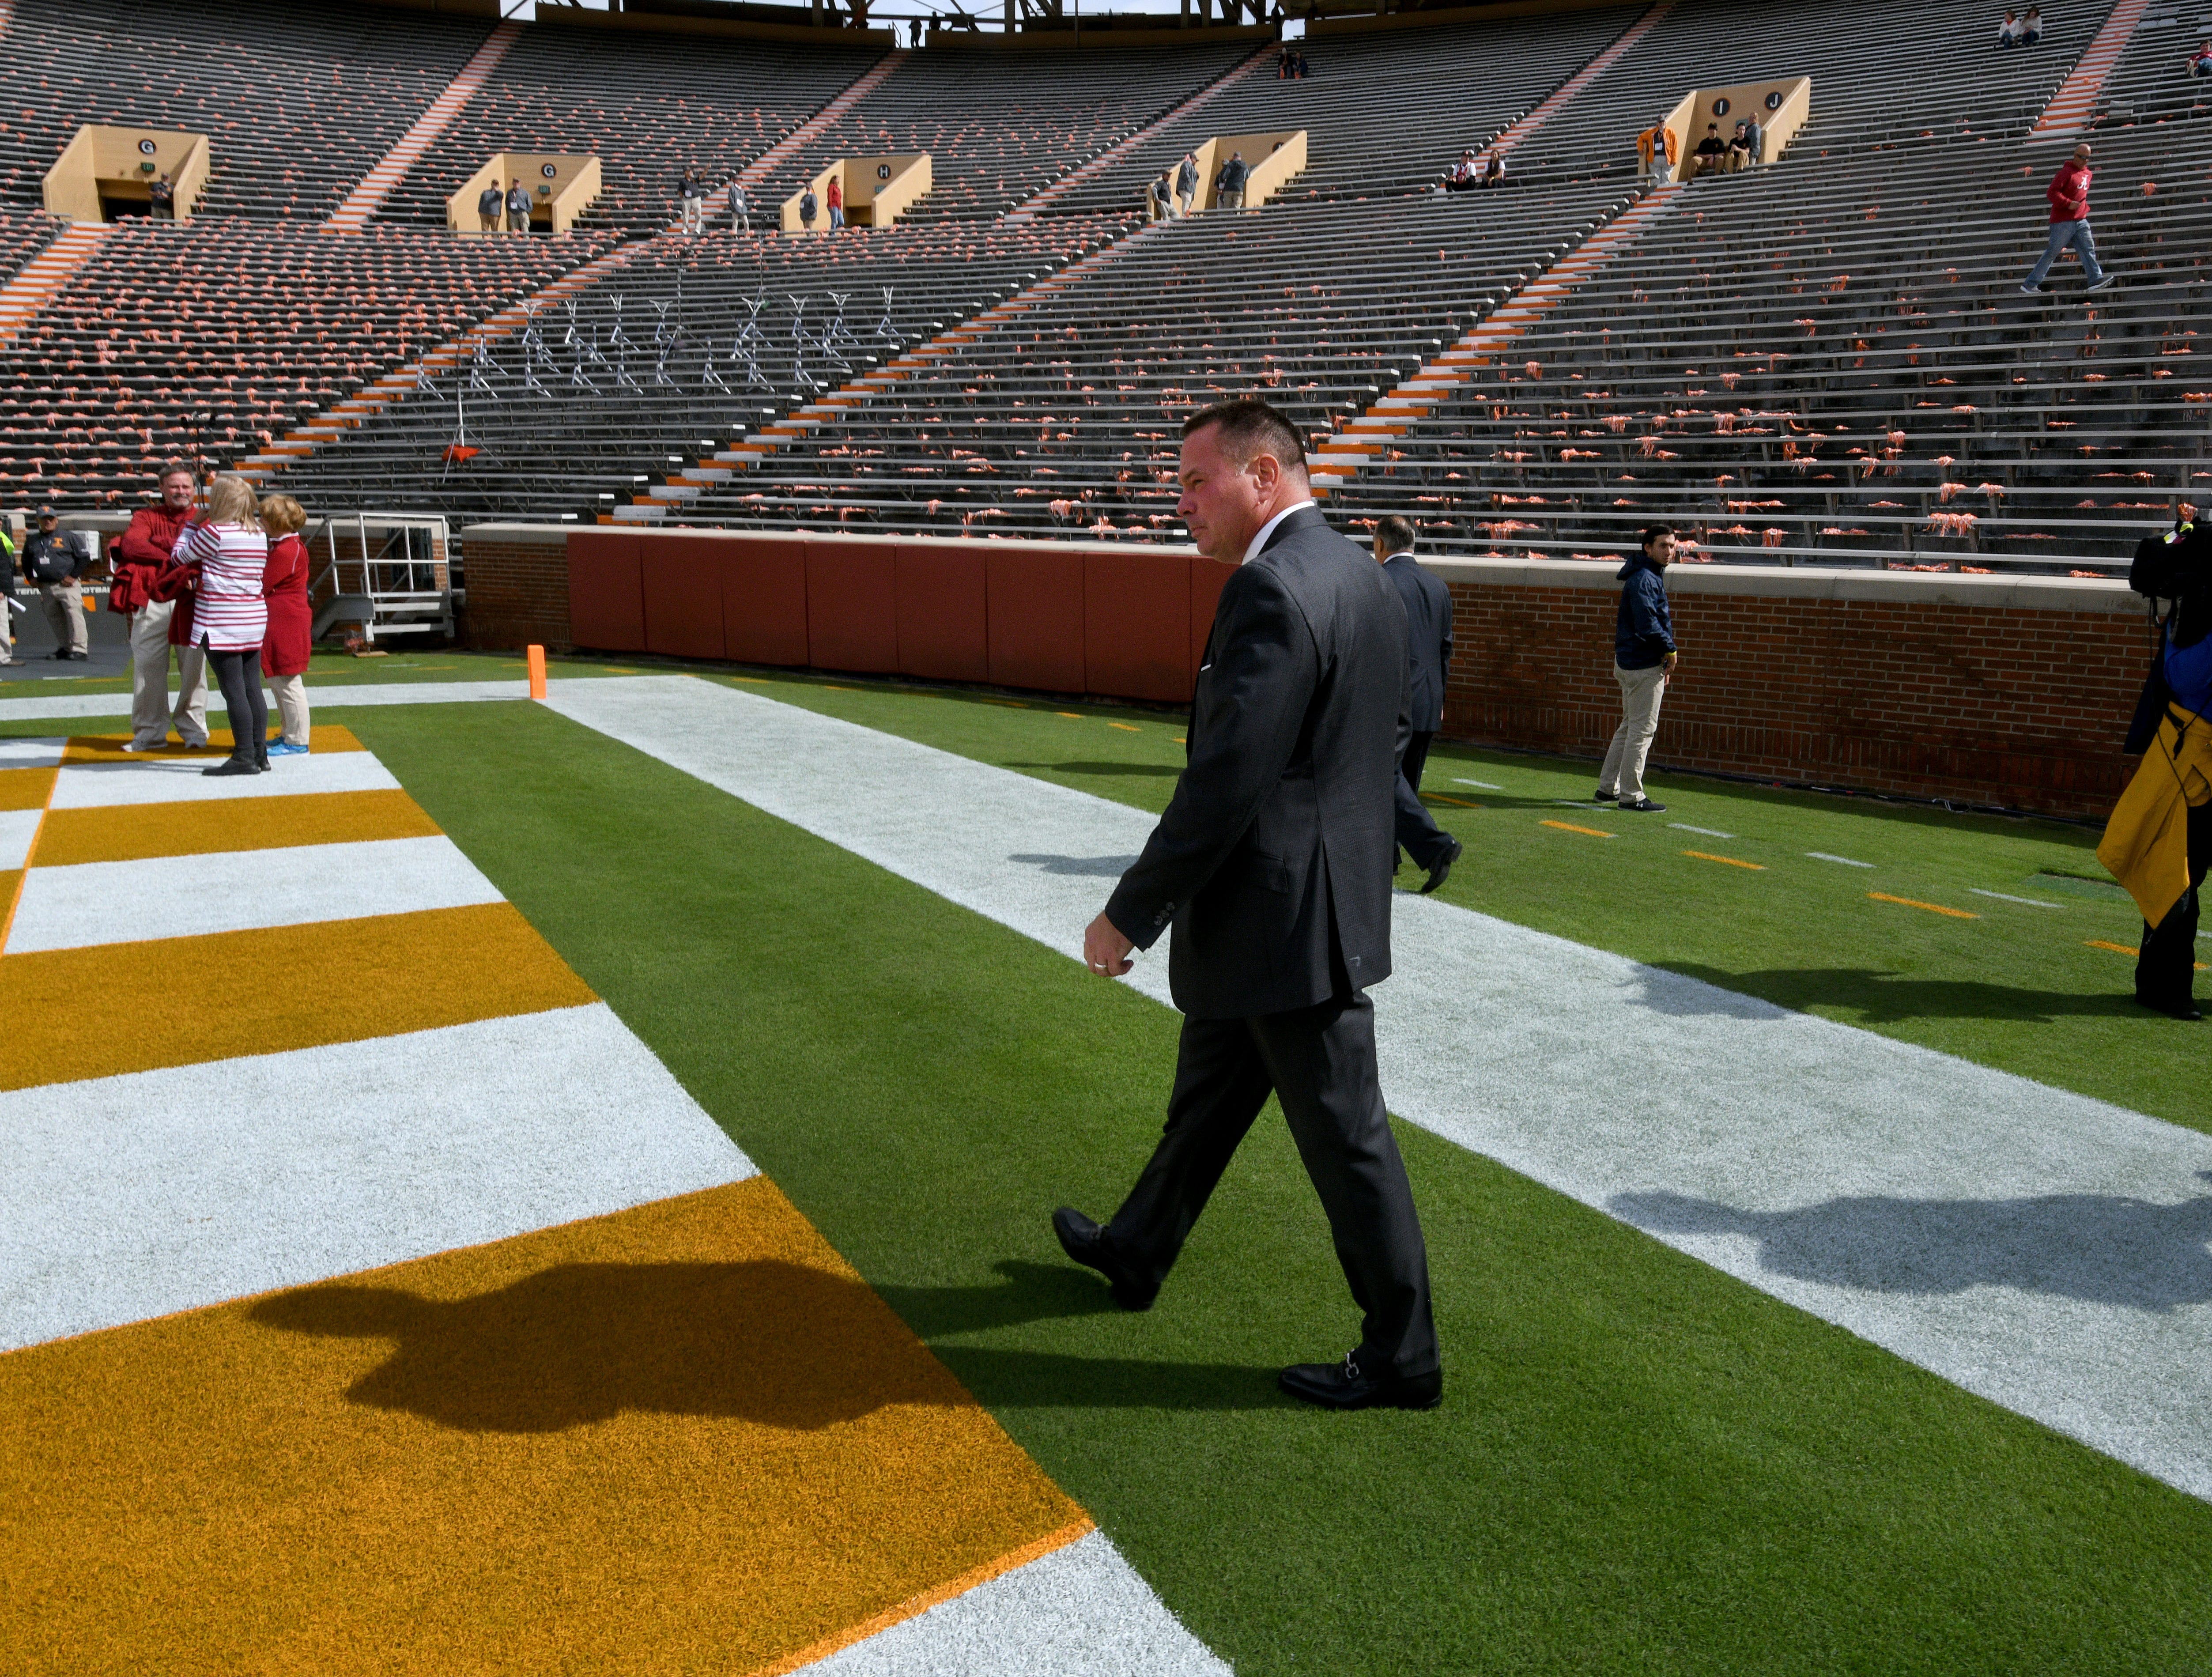 Alabama analyst Butch Jones walks onto the field wearing an Alabama tie before the against Tennessee game Saturday, October 20, 2018 at Neyland Stadium in Knoxville, Tenn.